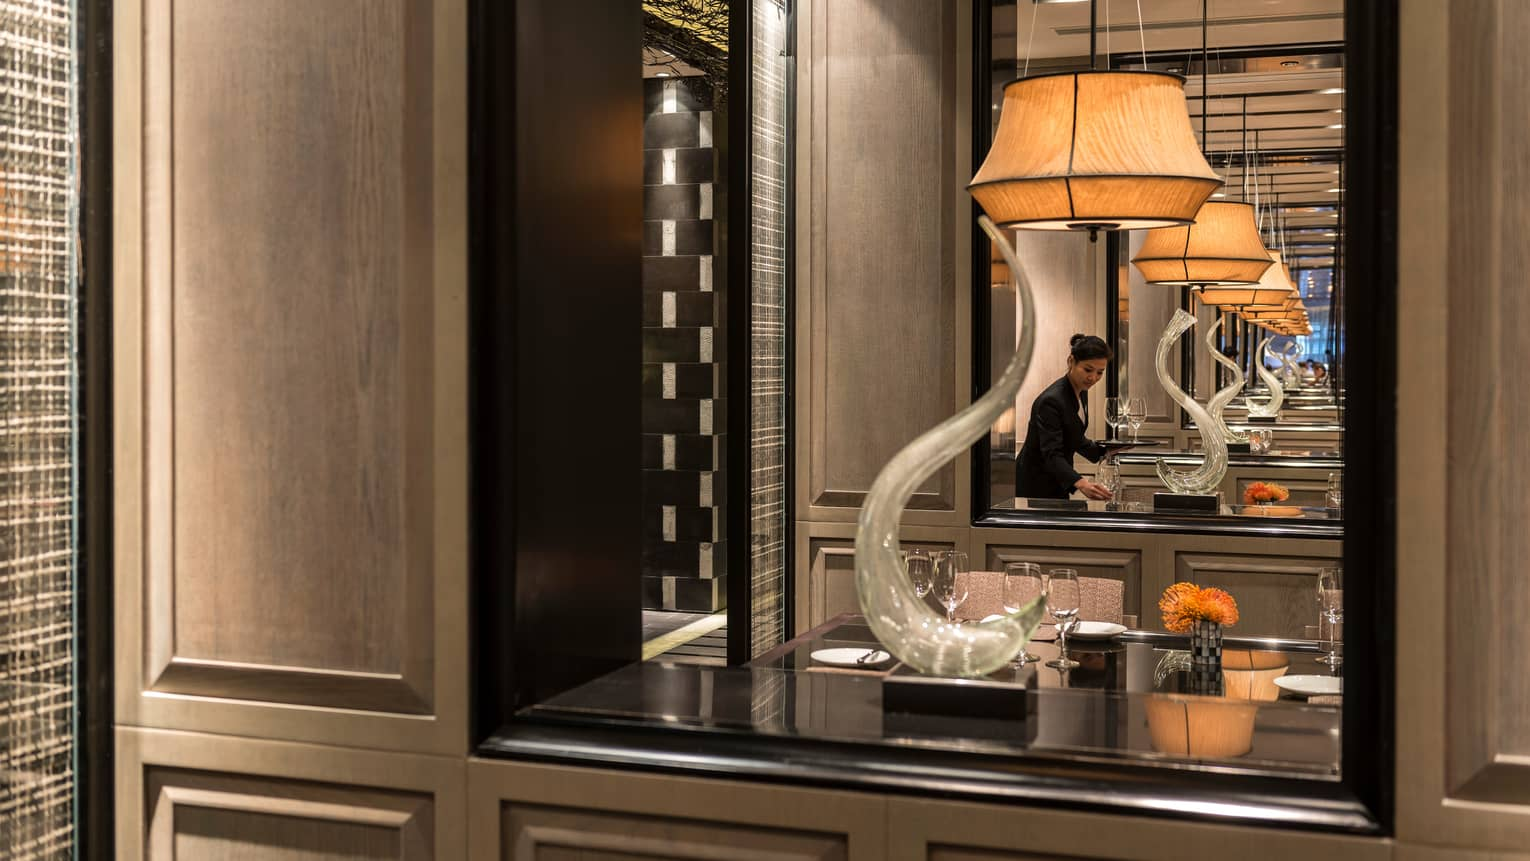 Reflection of Foo restaurant server setting table in mirror by shelf with modern sculpture